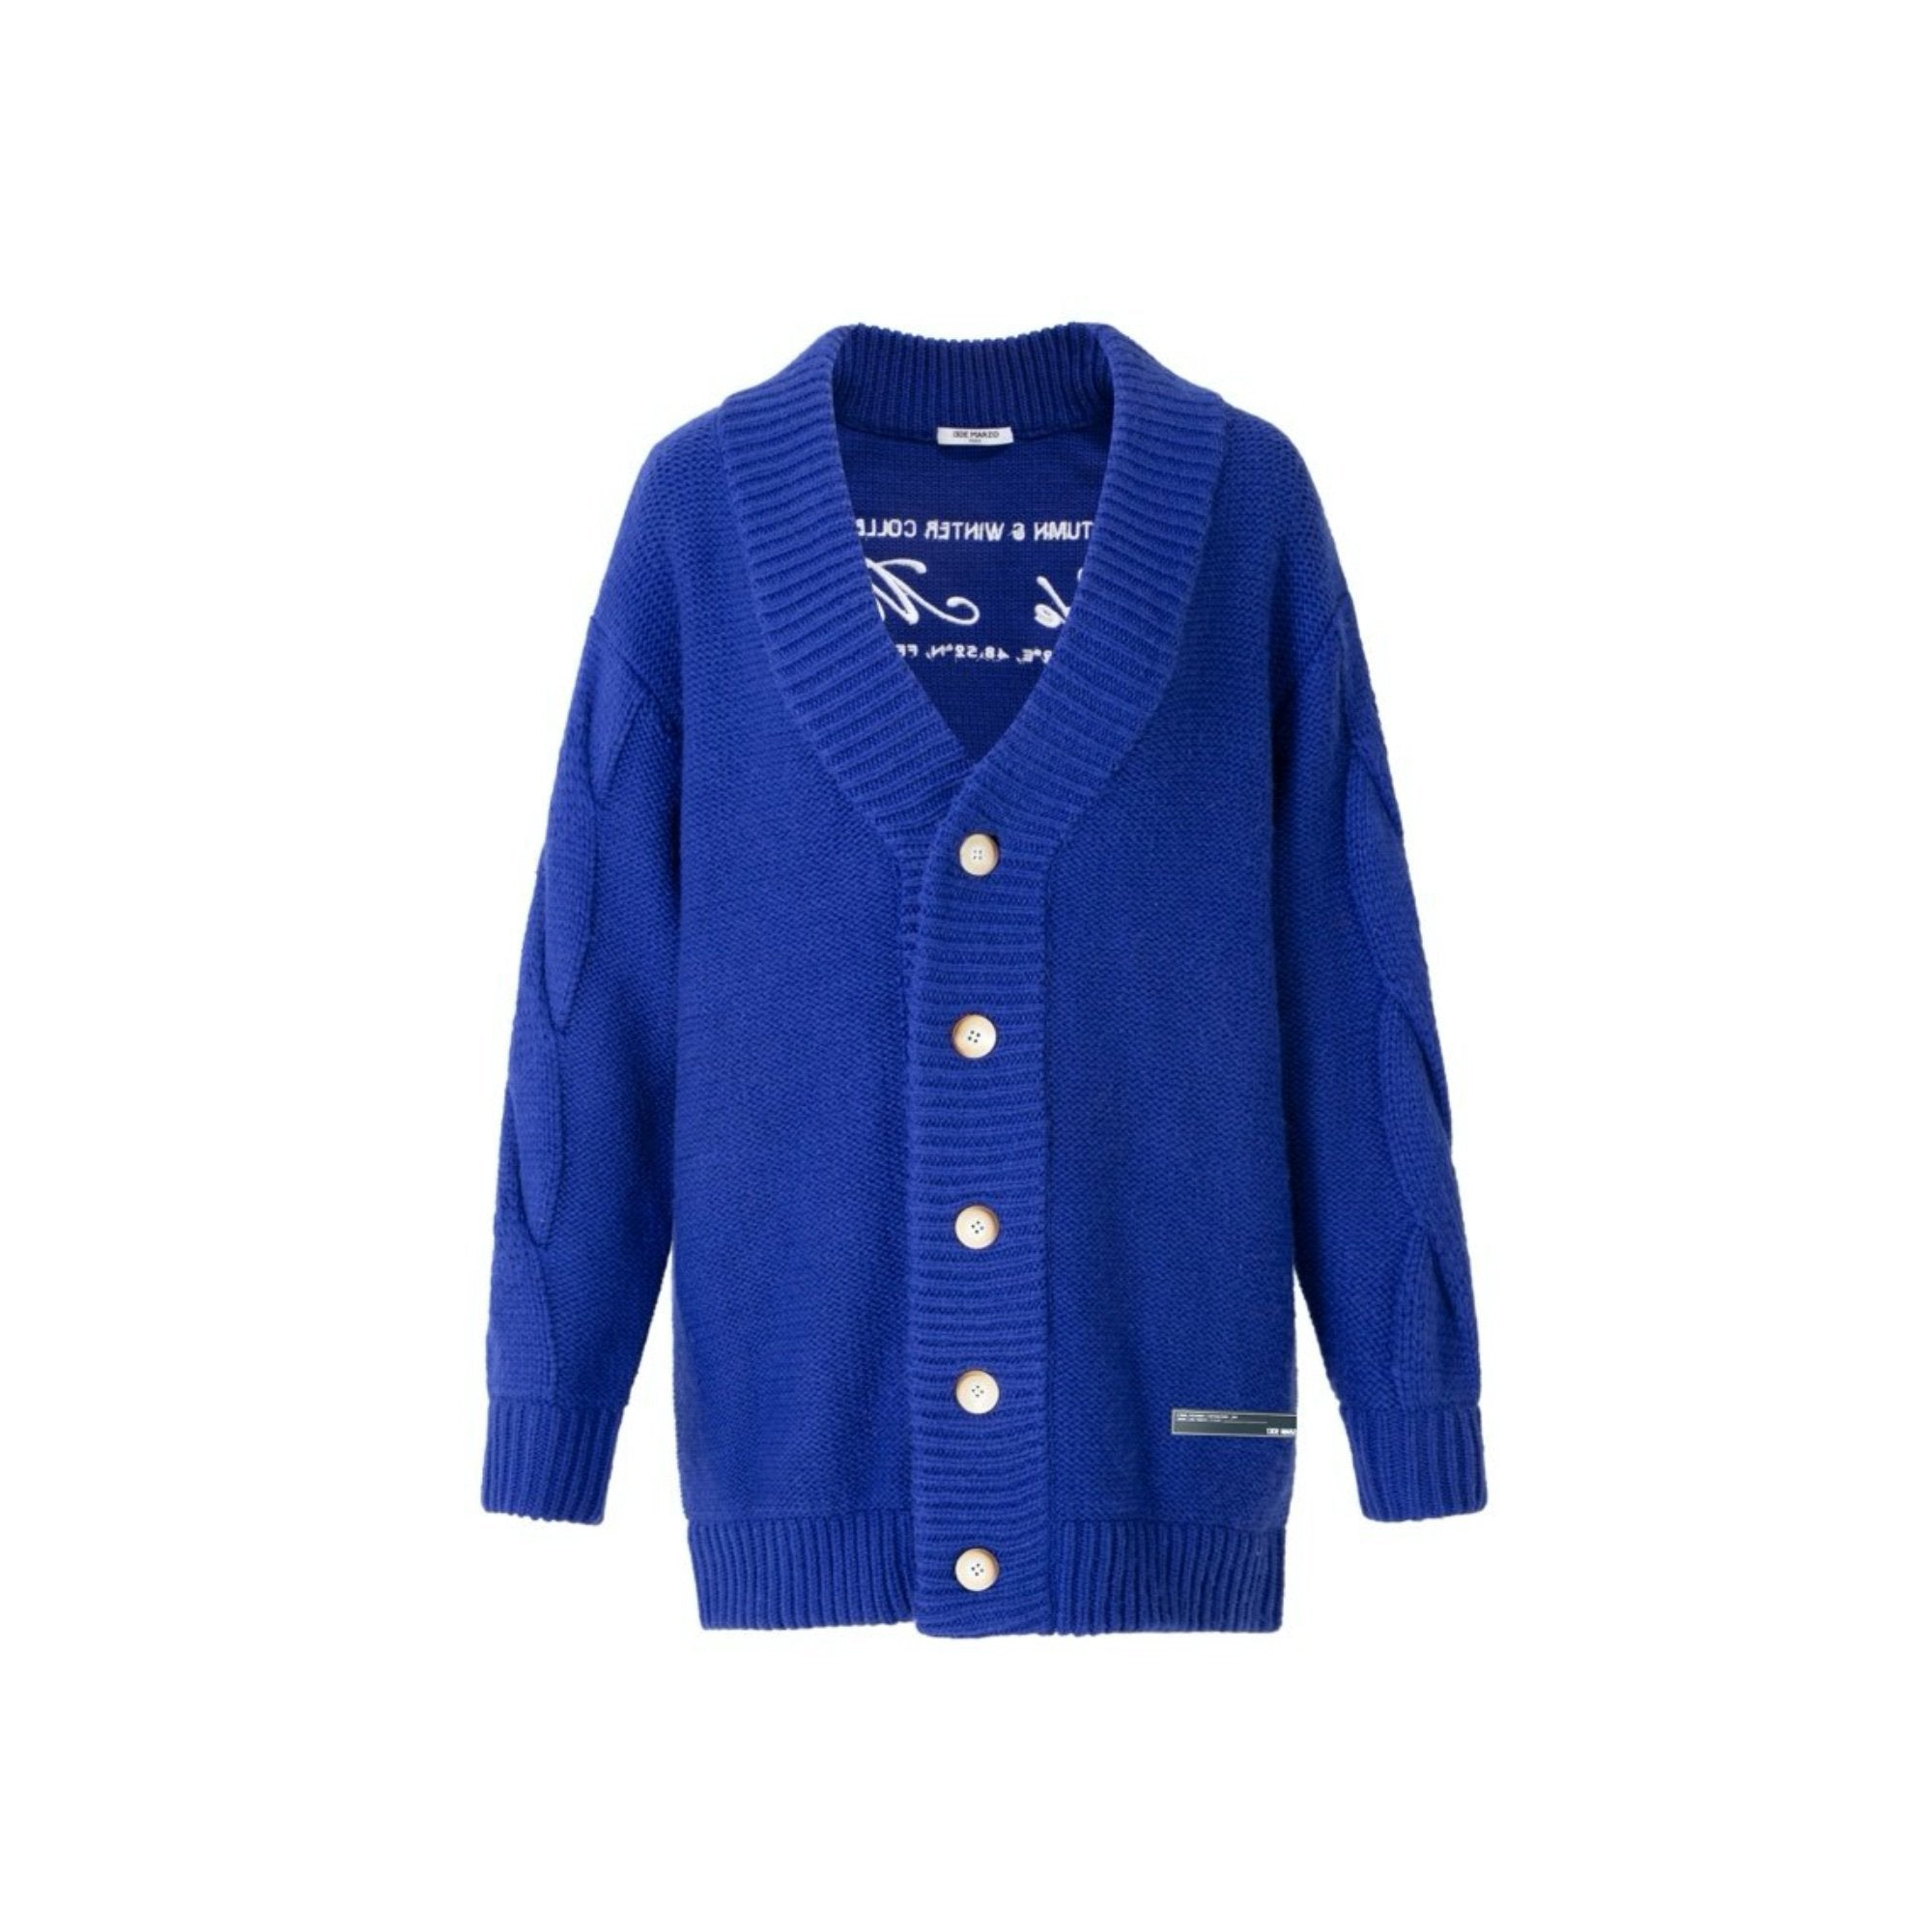 13 DE MARZO Logo Embroidered Cardigan Blue | MADA IN CHINA